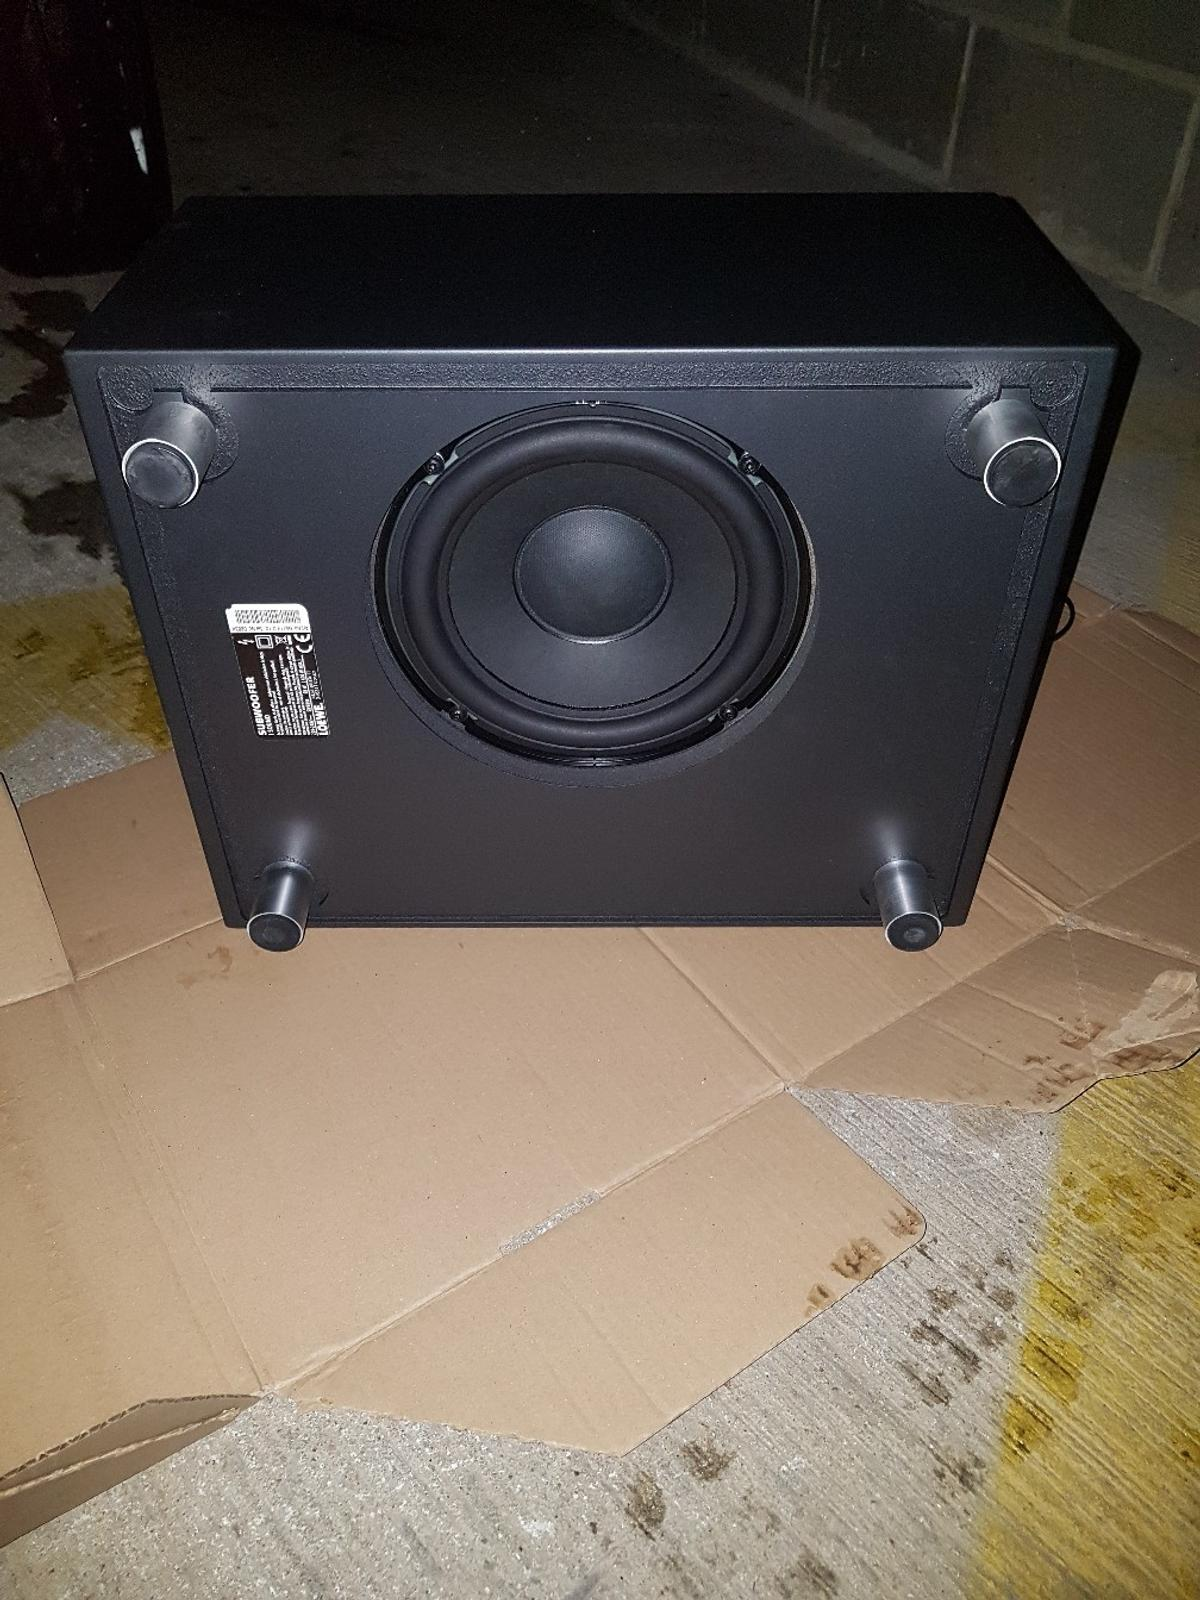 Home subwoofer it is as good as new the problem is where u connect the wire at there r 3 clips missing but it still works fine.